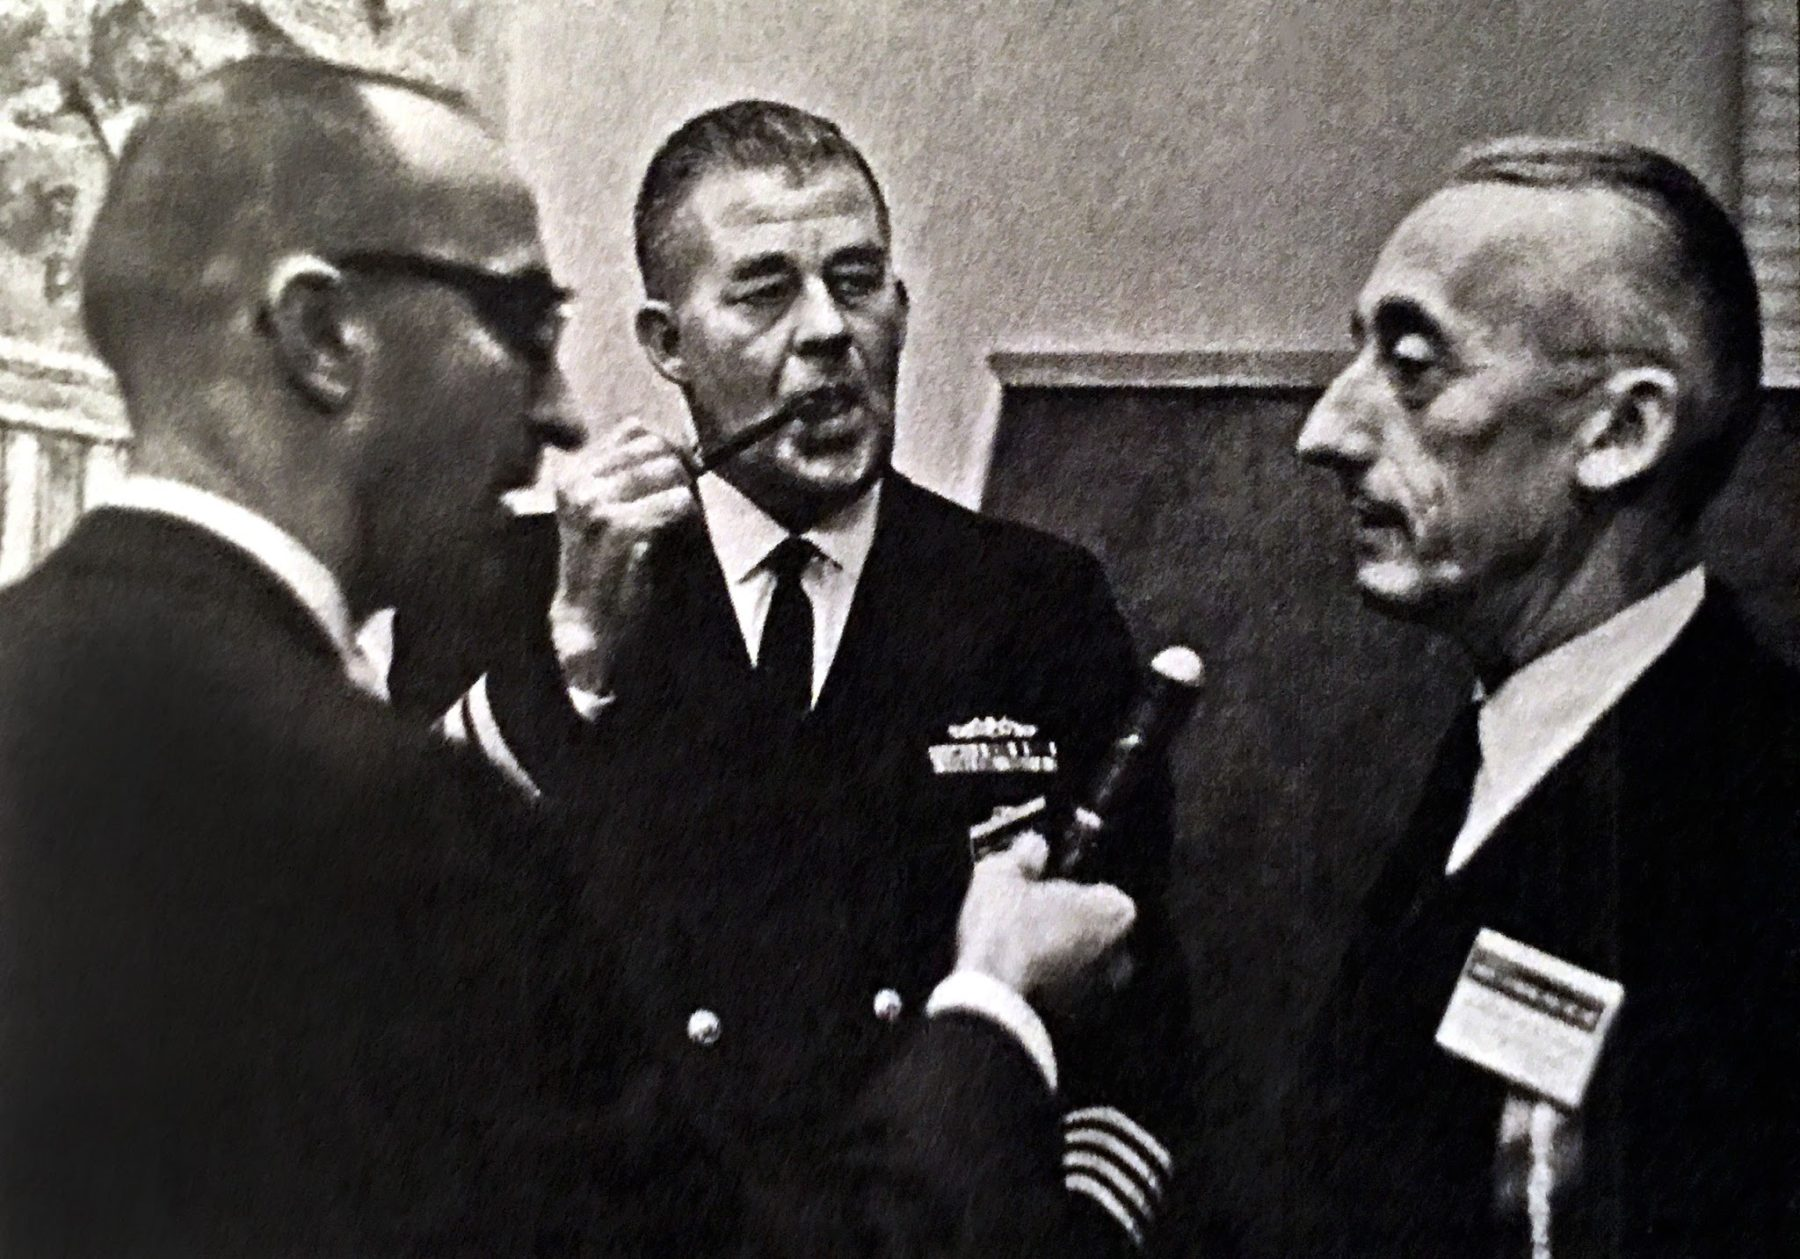 Dr.-George-Bond-with-Jacques-Cousteau-SEALAB-1968